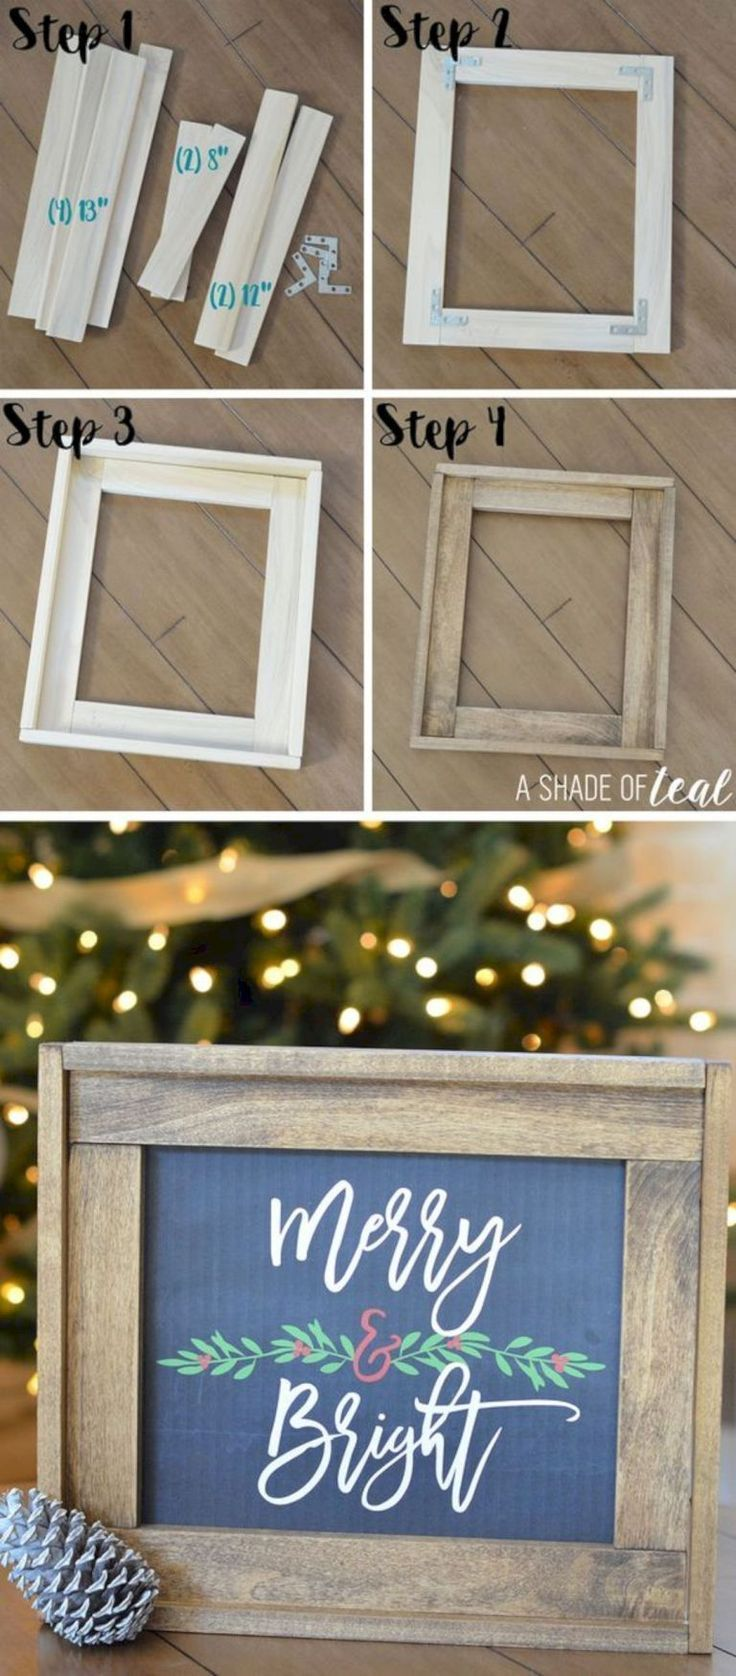 Diy Home Decor Picture Frames 14 #WoodProjectsDiyShelf | For him ...